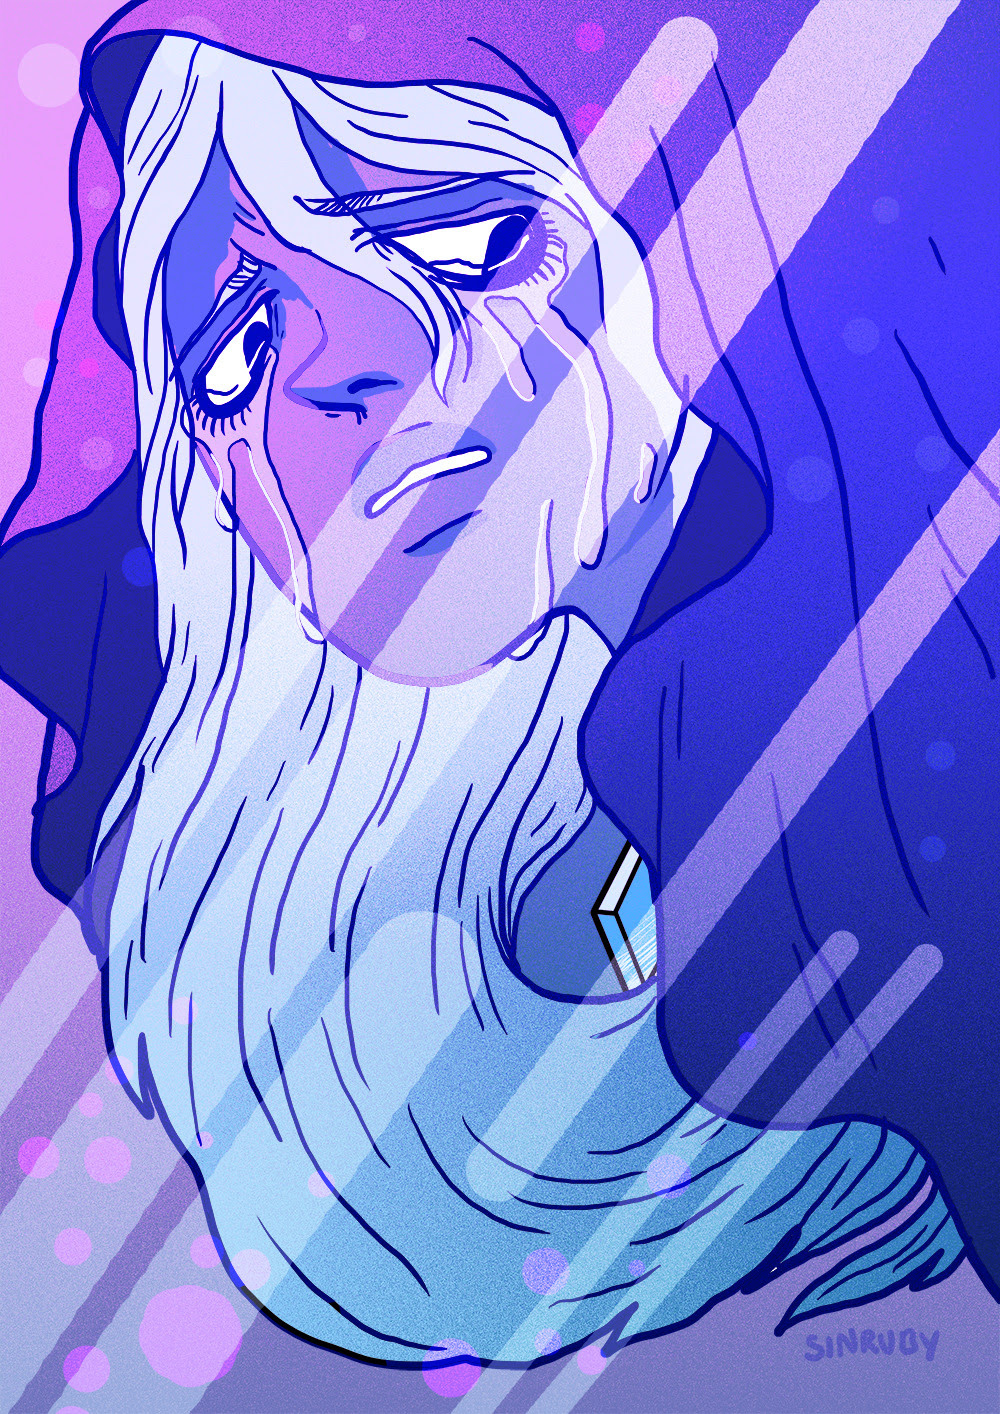 Blue diamond is so beautiful, so I took like 5 minutes to doodle this during my lunch break